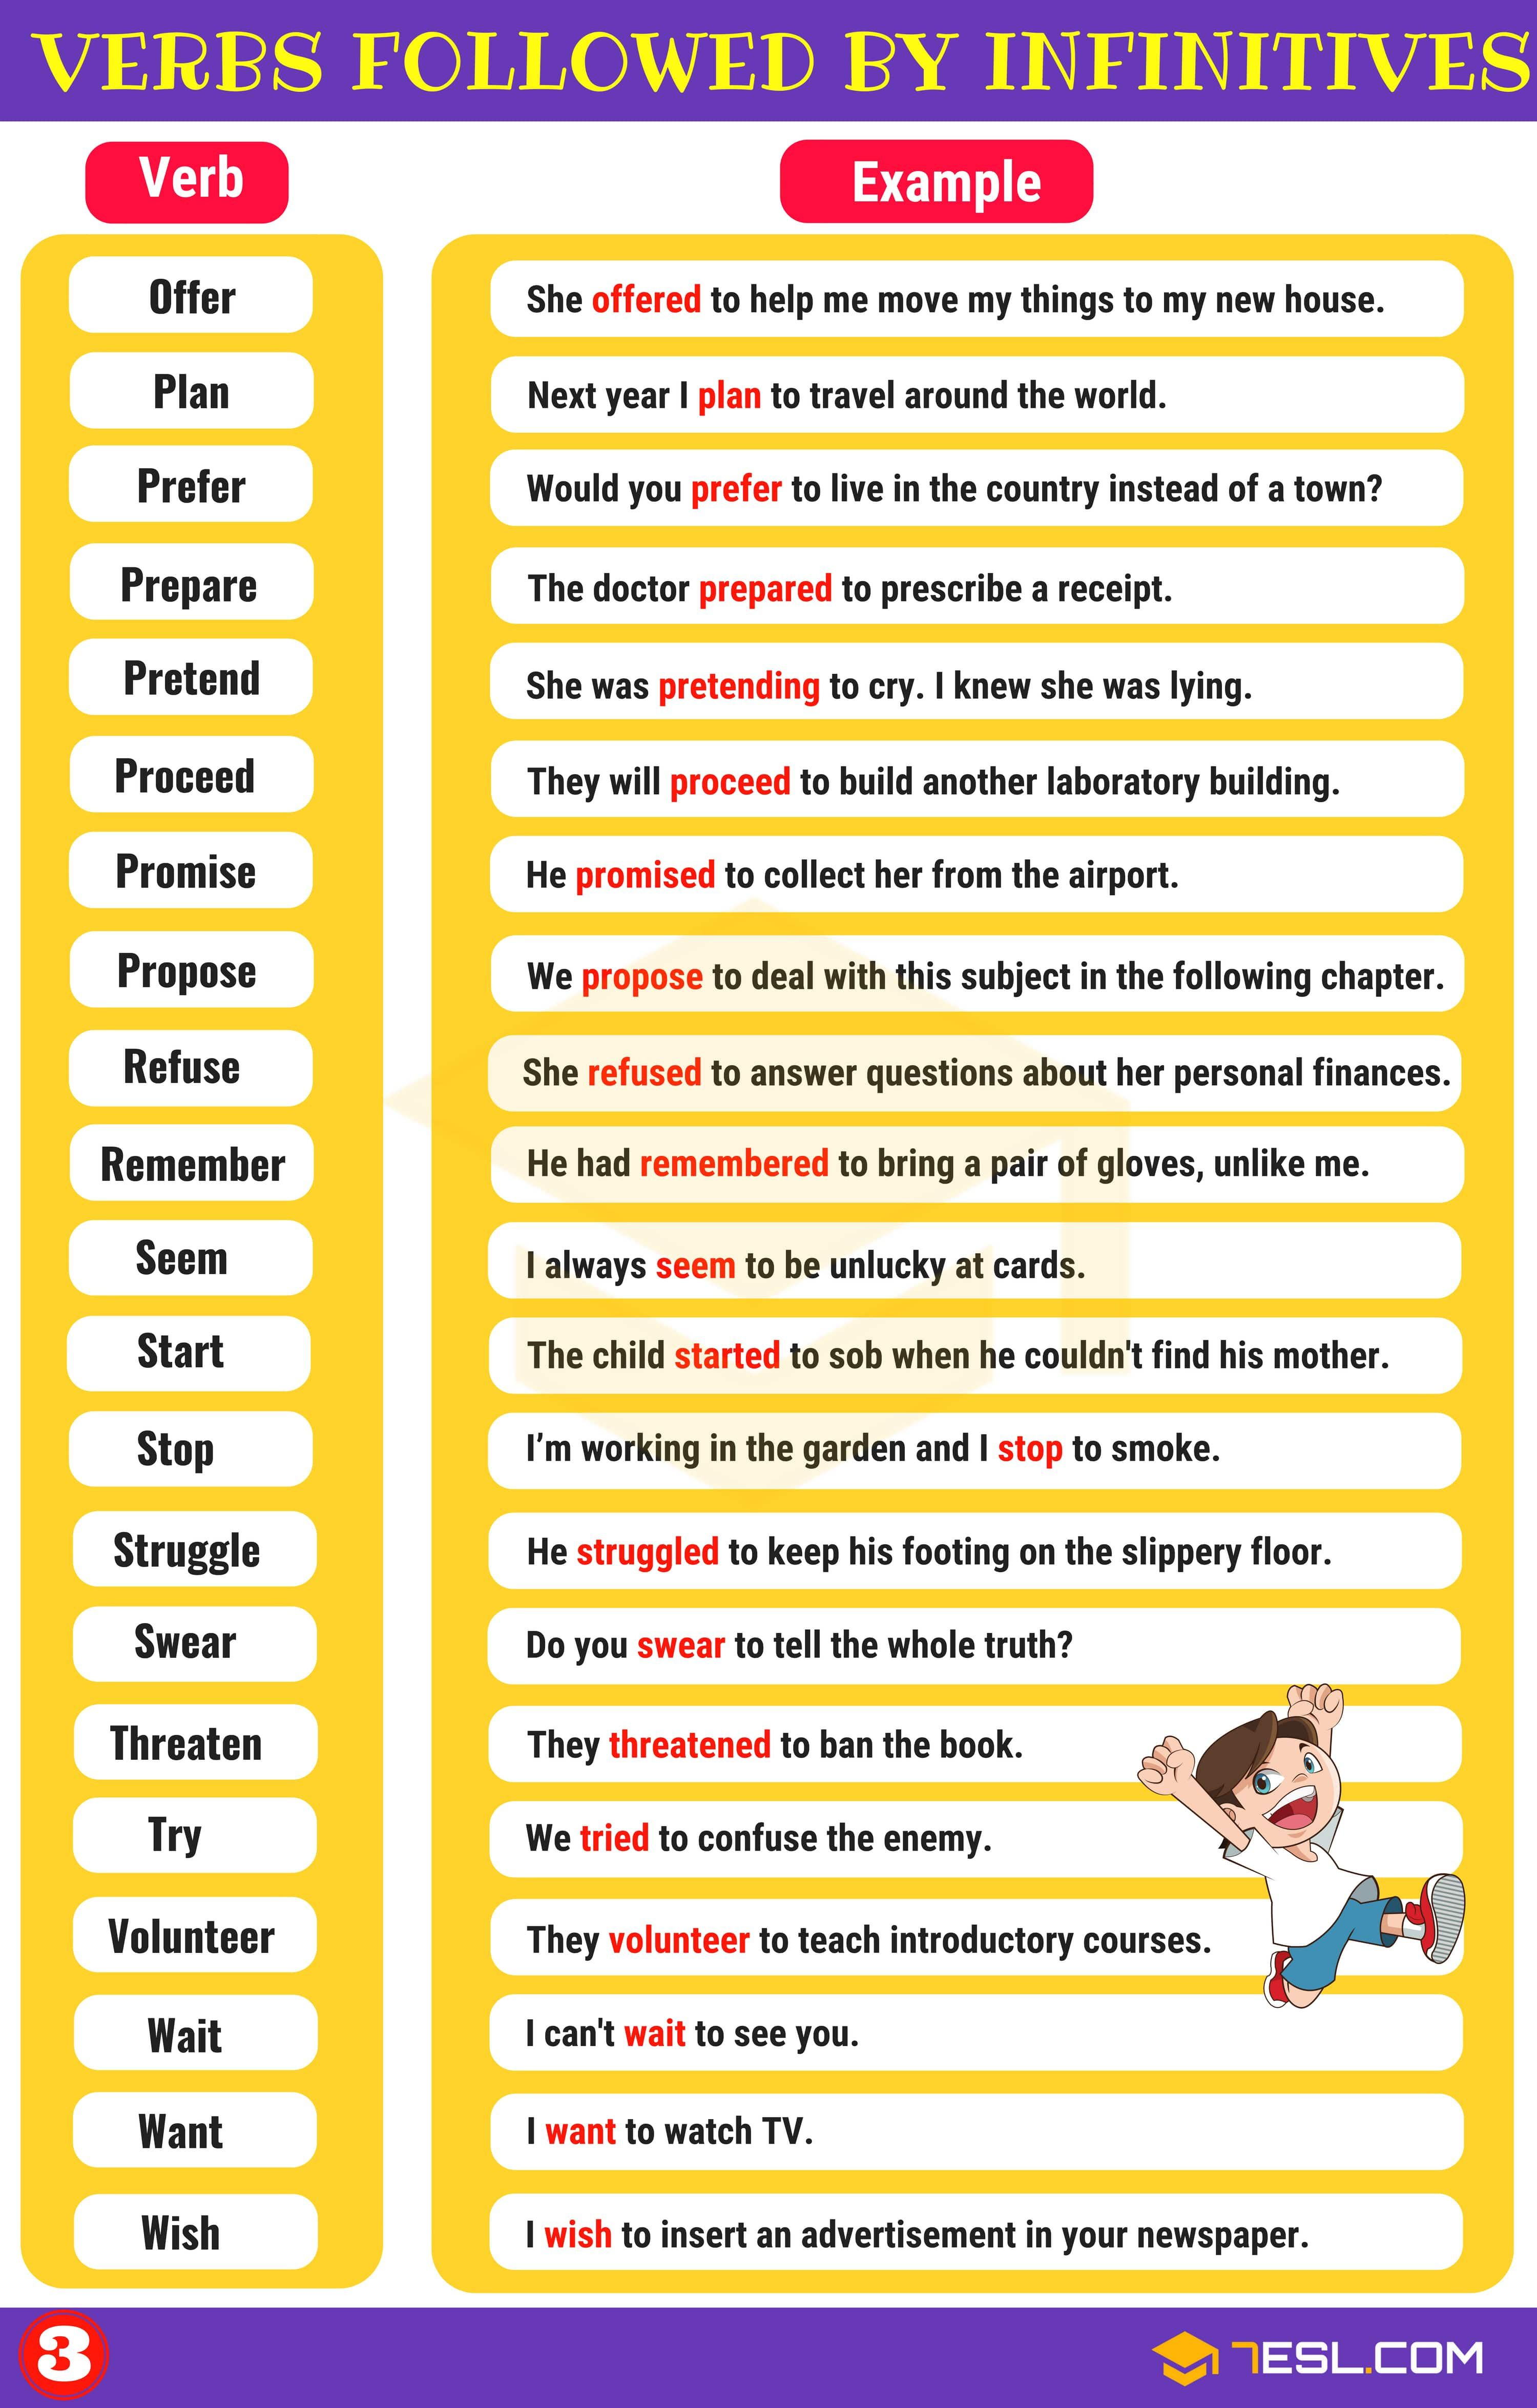 55 Common Verbs Followed By Infinitives In English